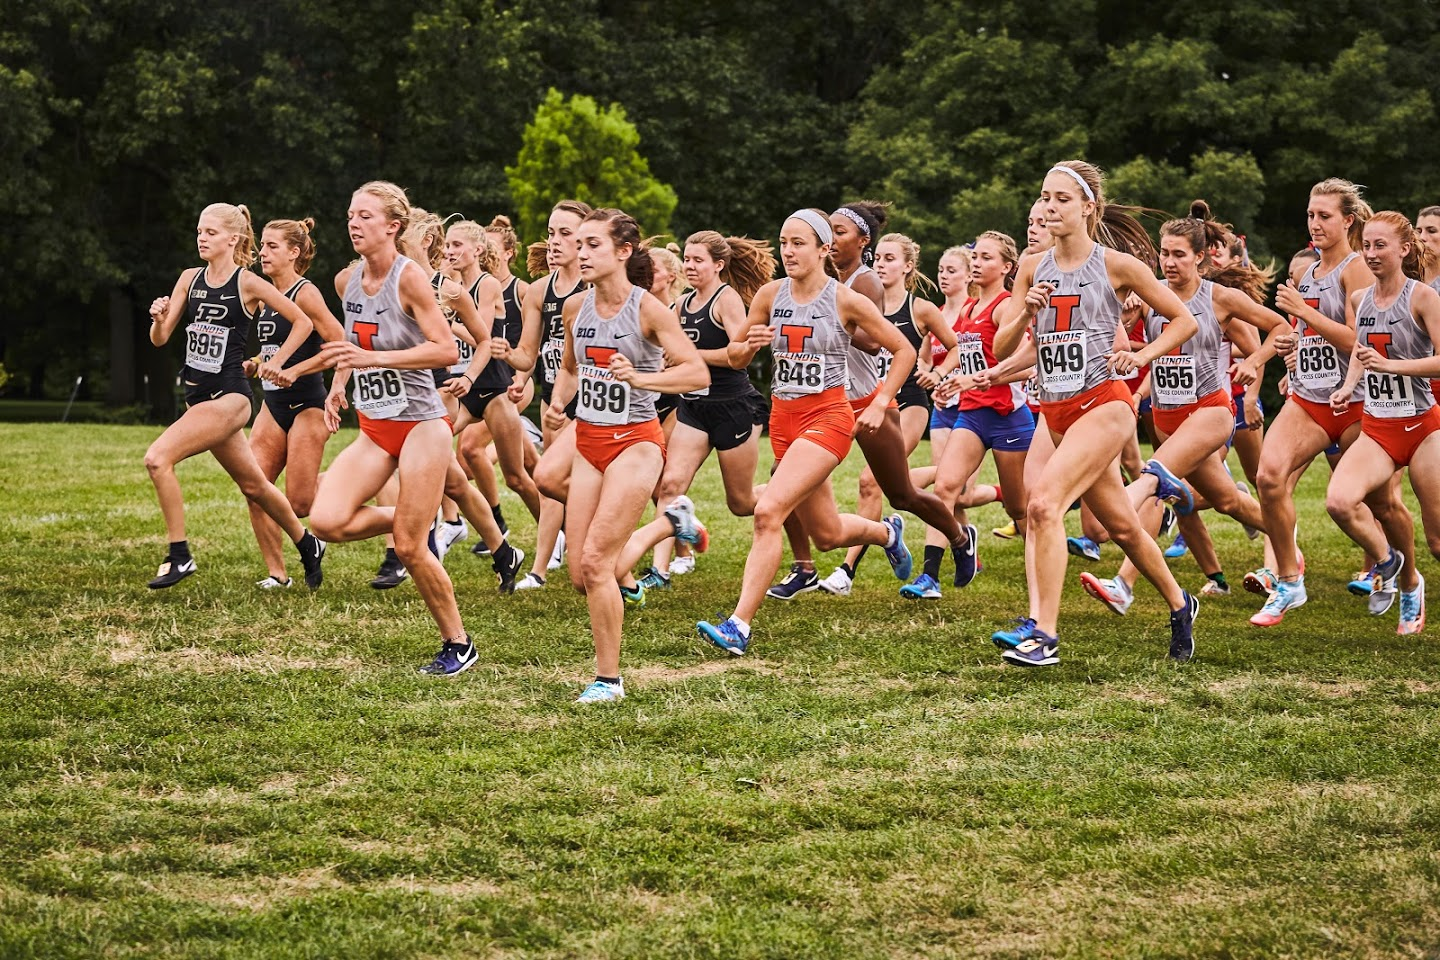 The women's cross country team kicks off its fall campaign on Friday. Both the women's and men's teams dominated the Illini Open.